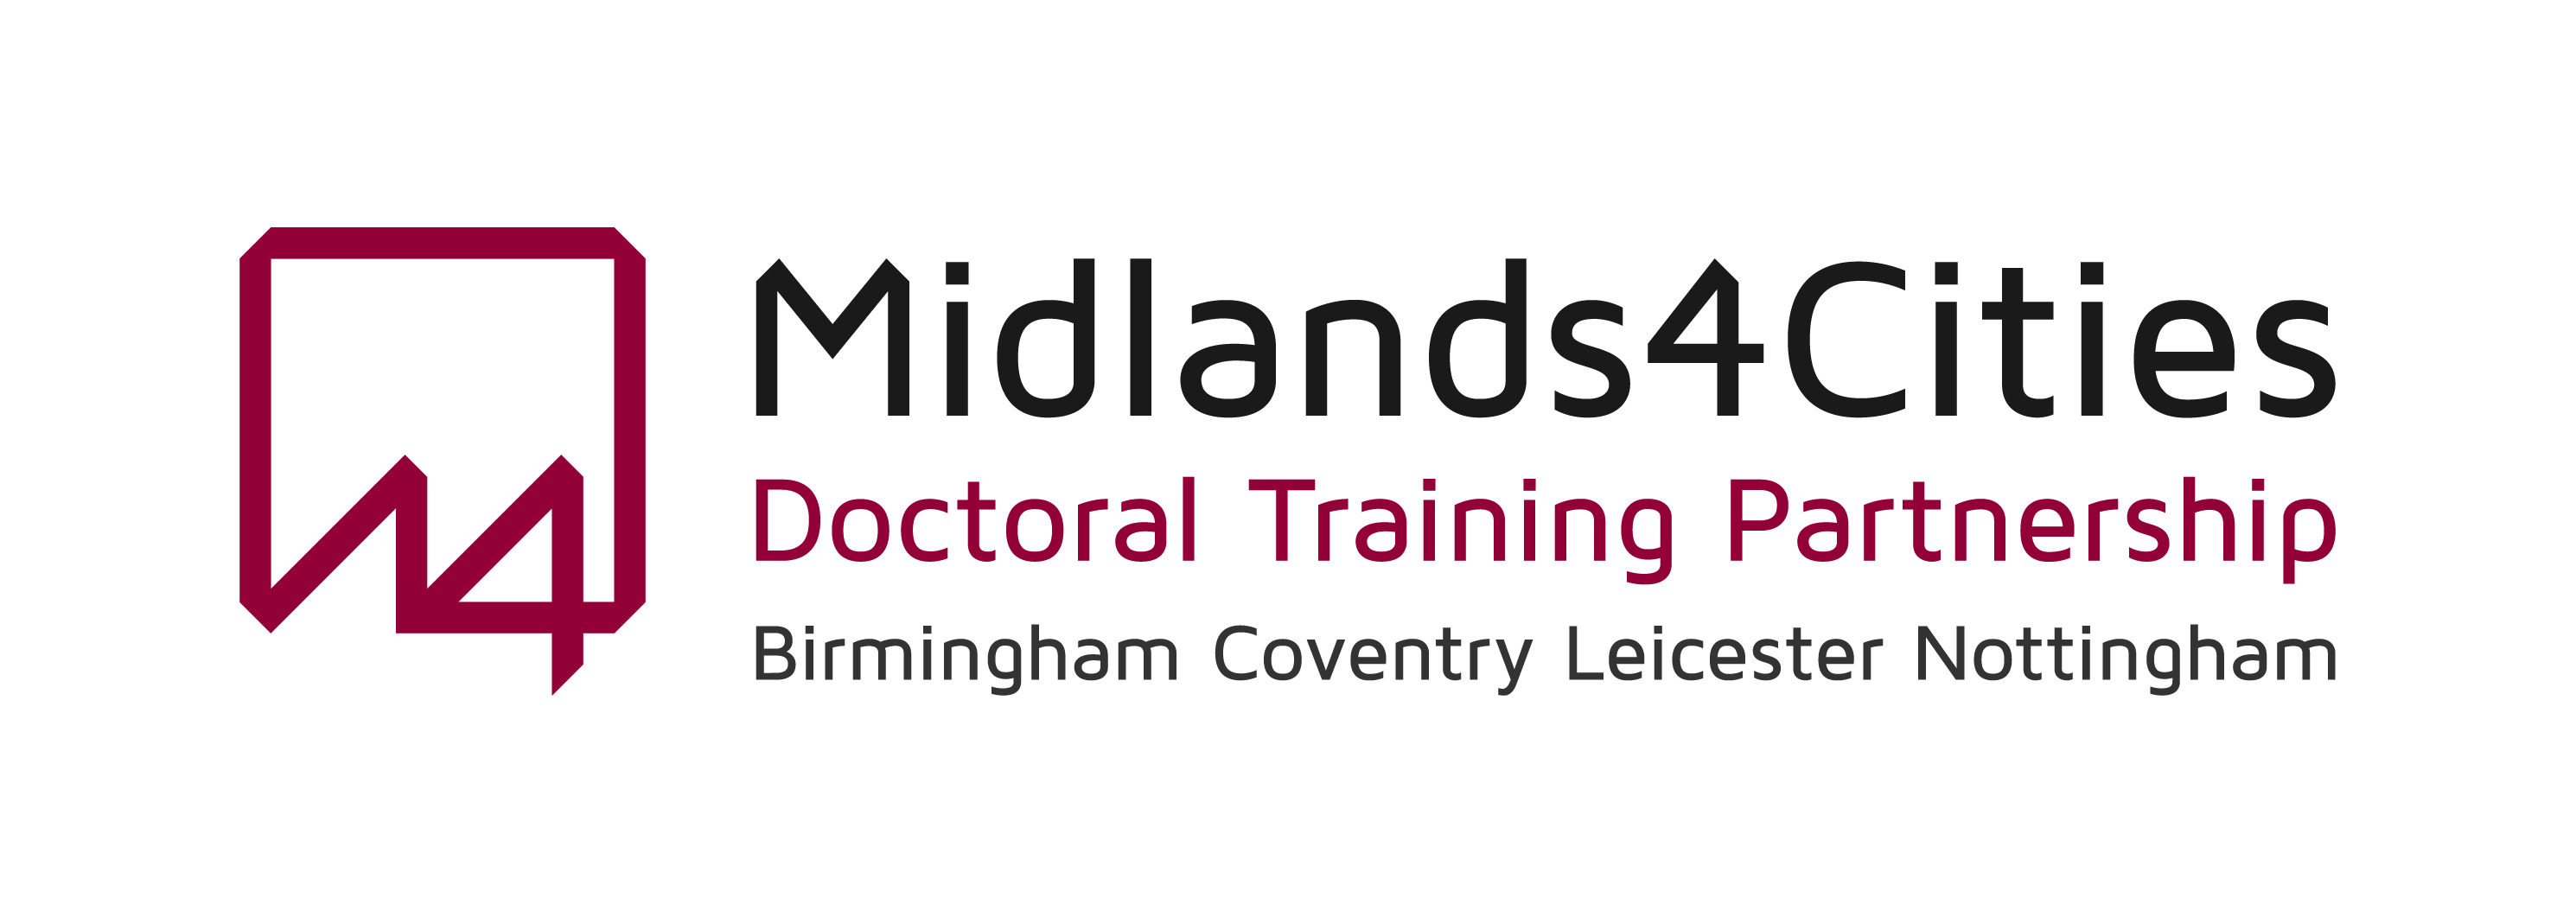 Midlands4Cities Doctoral Training Partnership logo